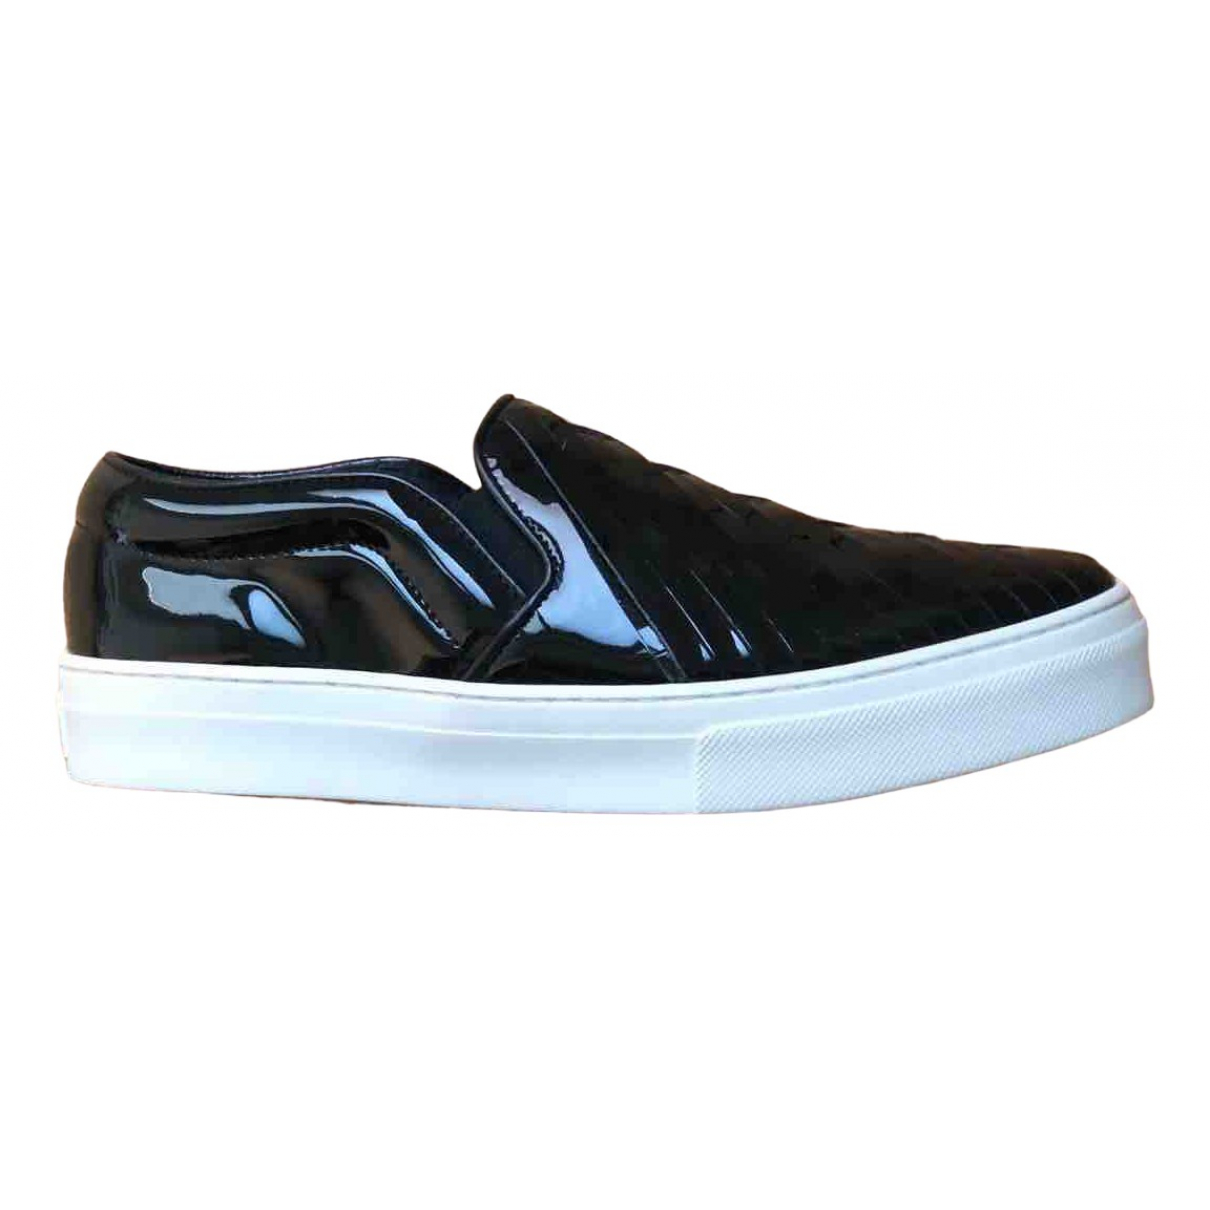 Celine \N Black Patent leather Trainers for Women 37 EU